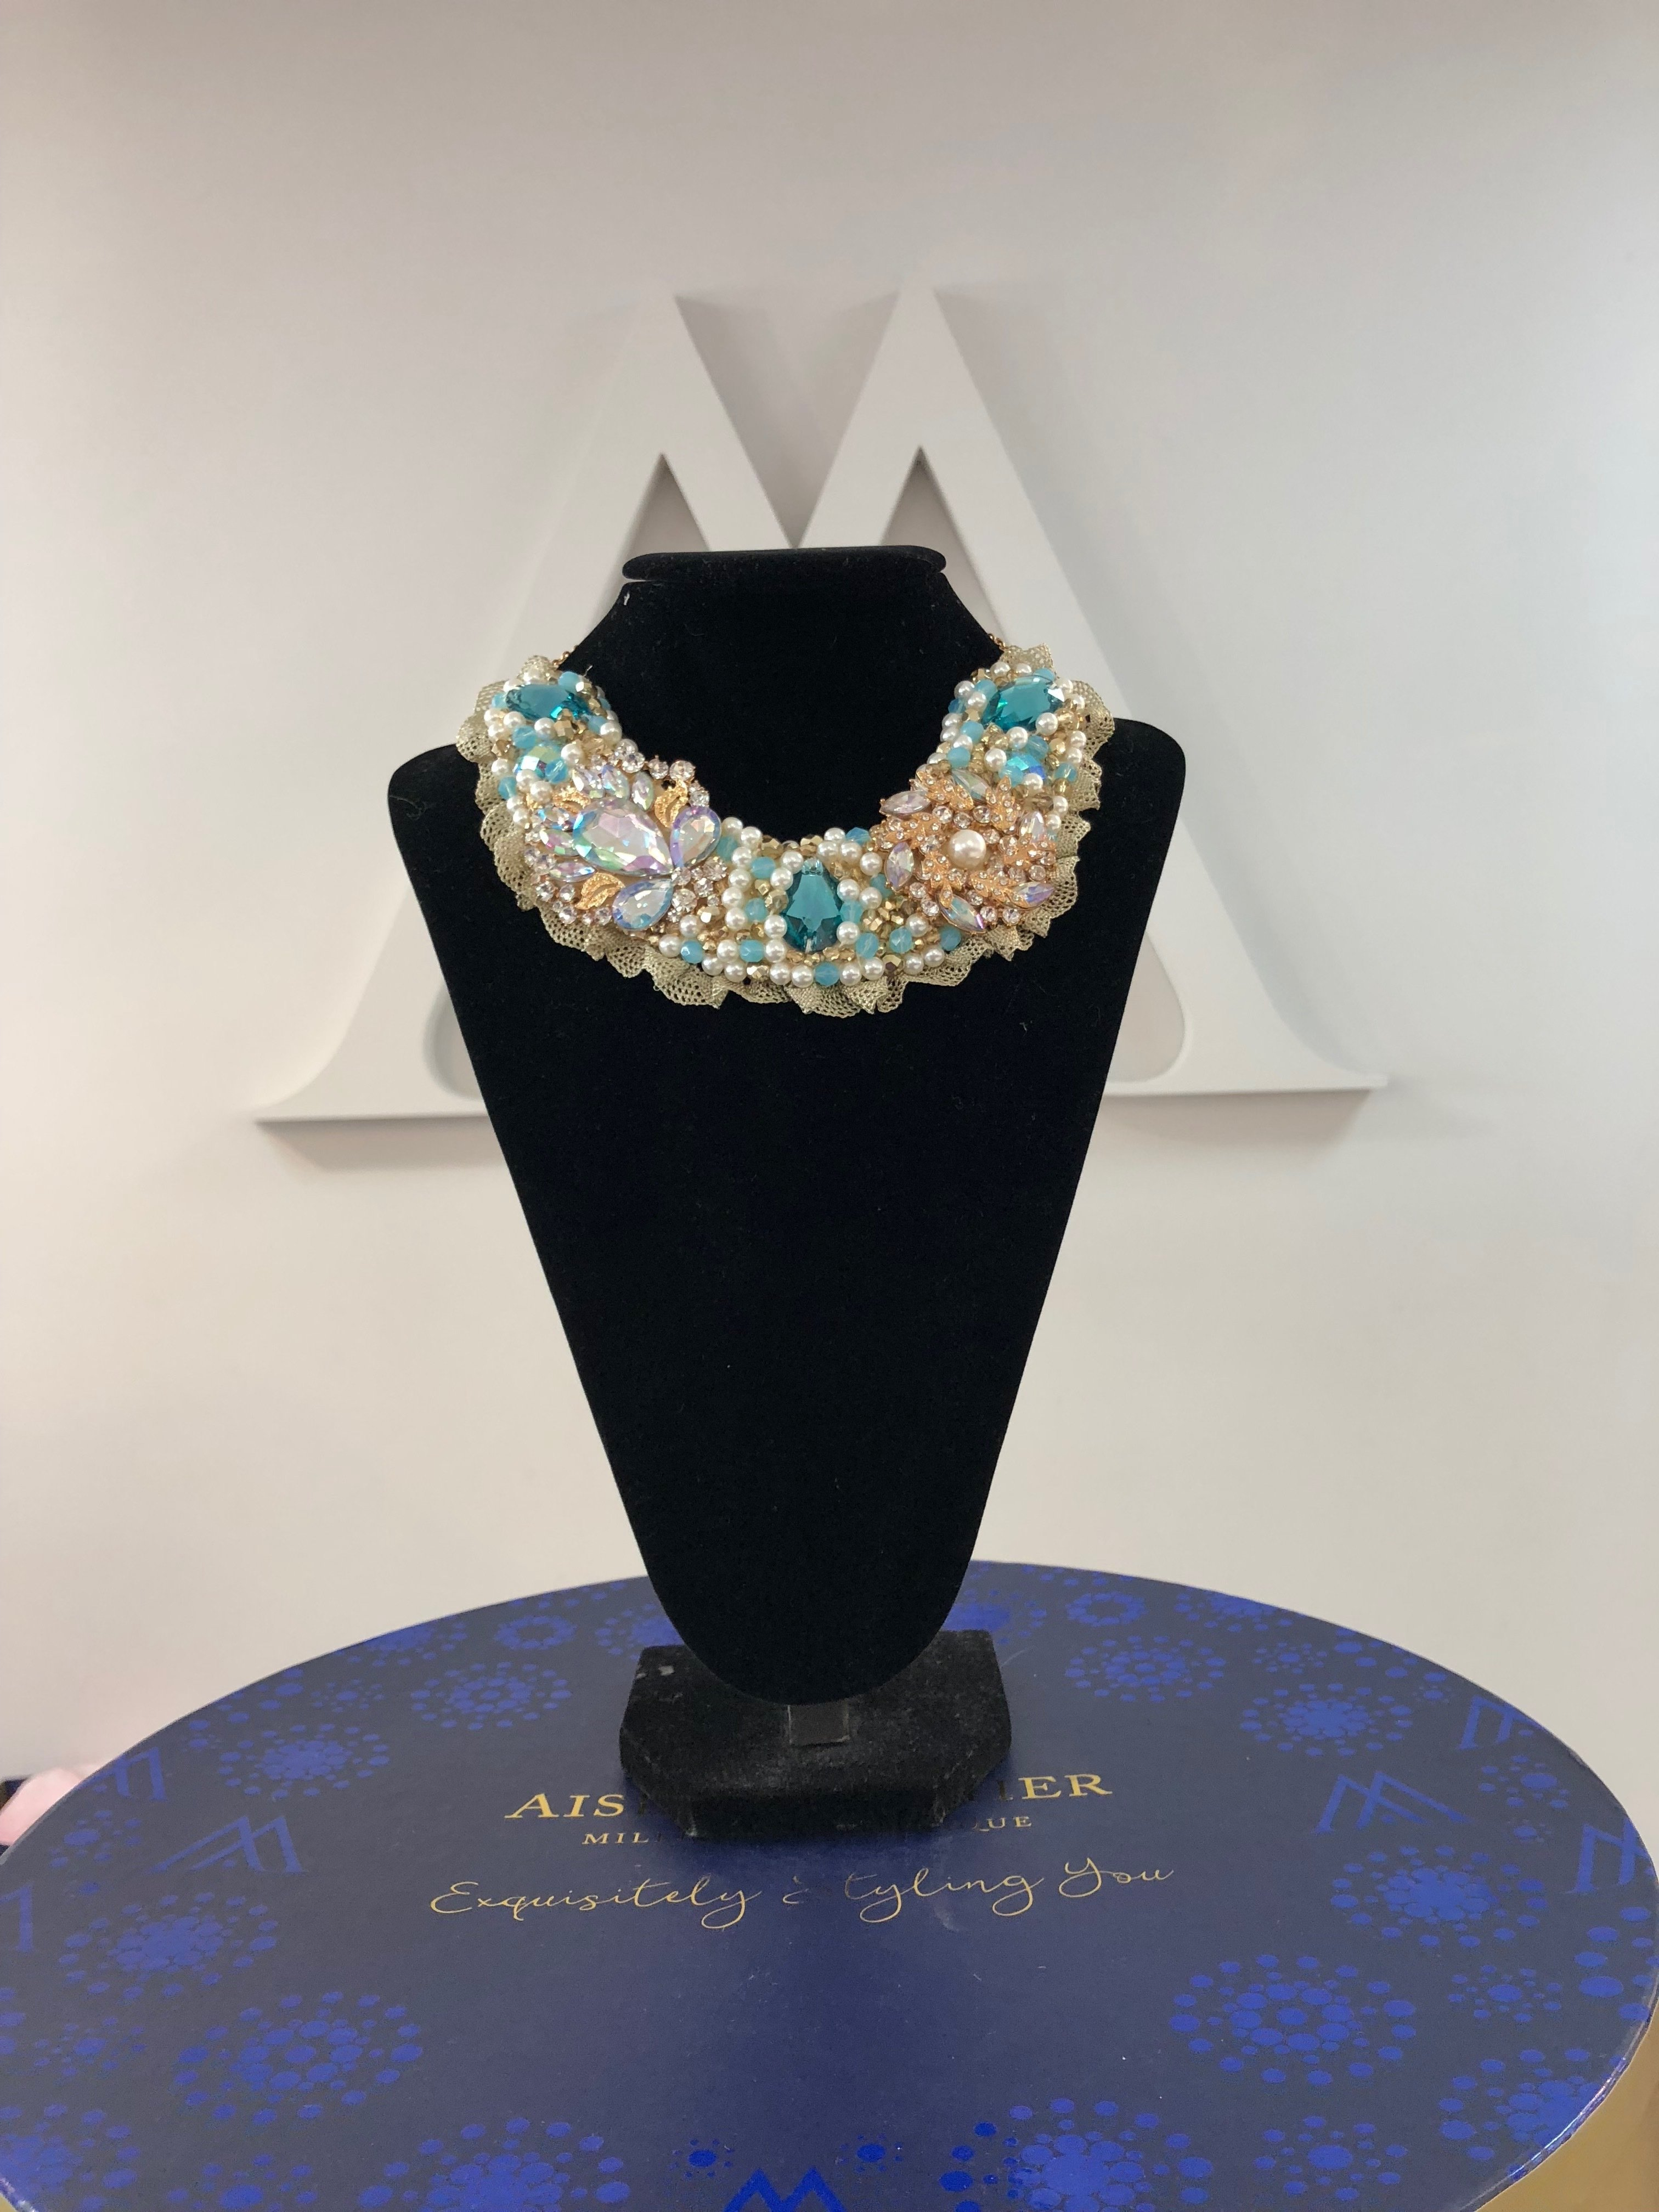 Aisling Maher Collar pearl/turquoise/bling